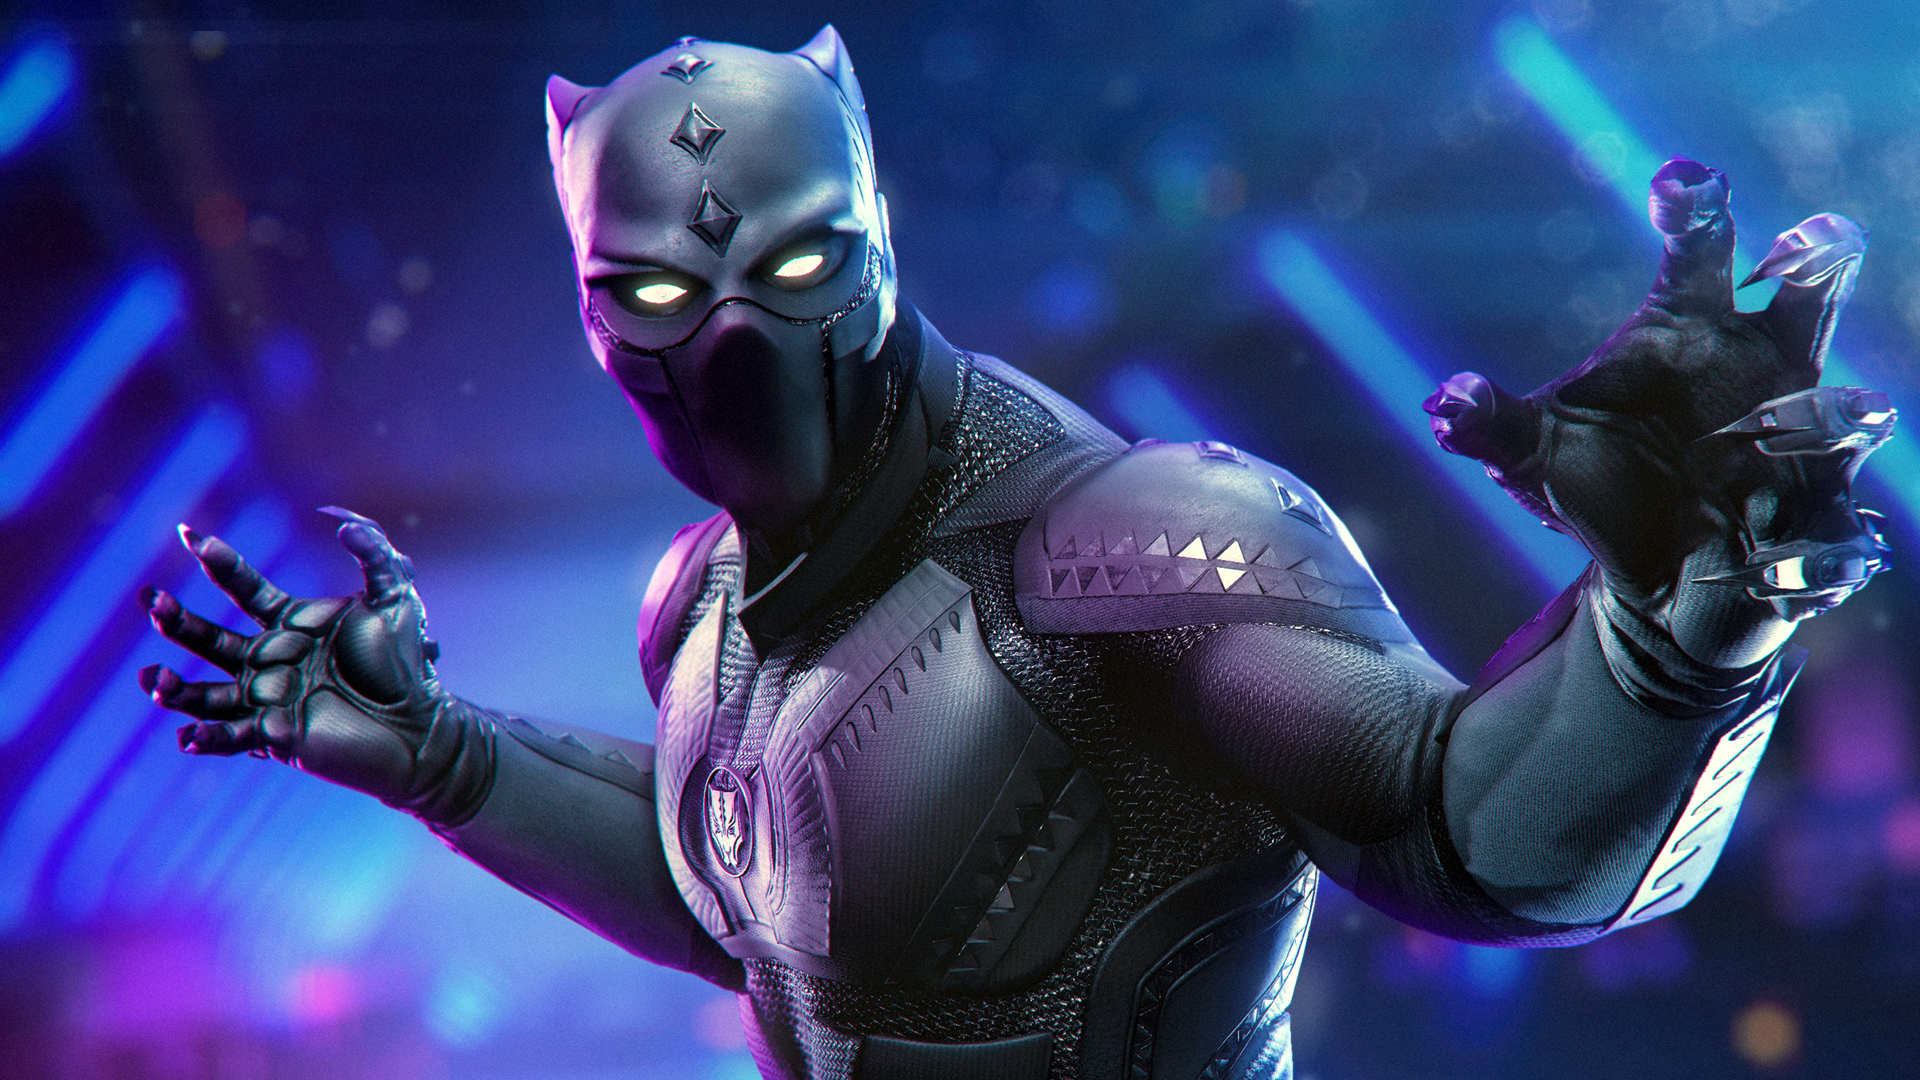 War For Wakanda adds 7-8 hours of story content to Marvel's Avengers